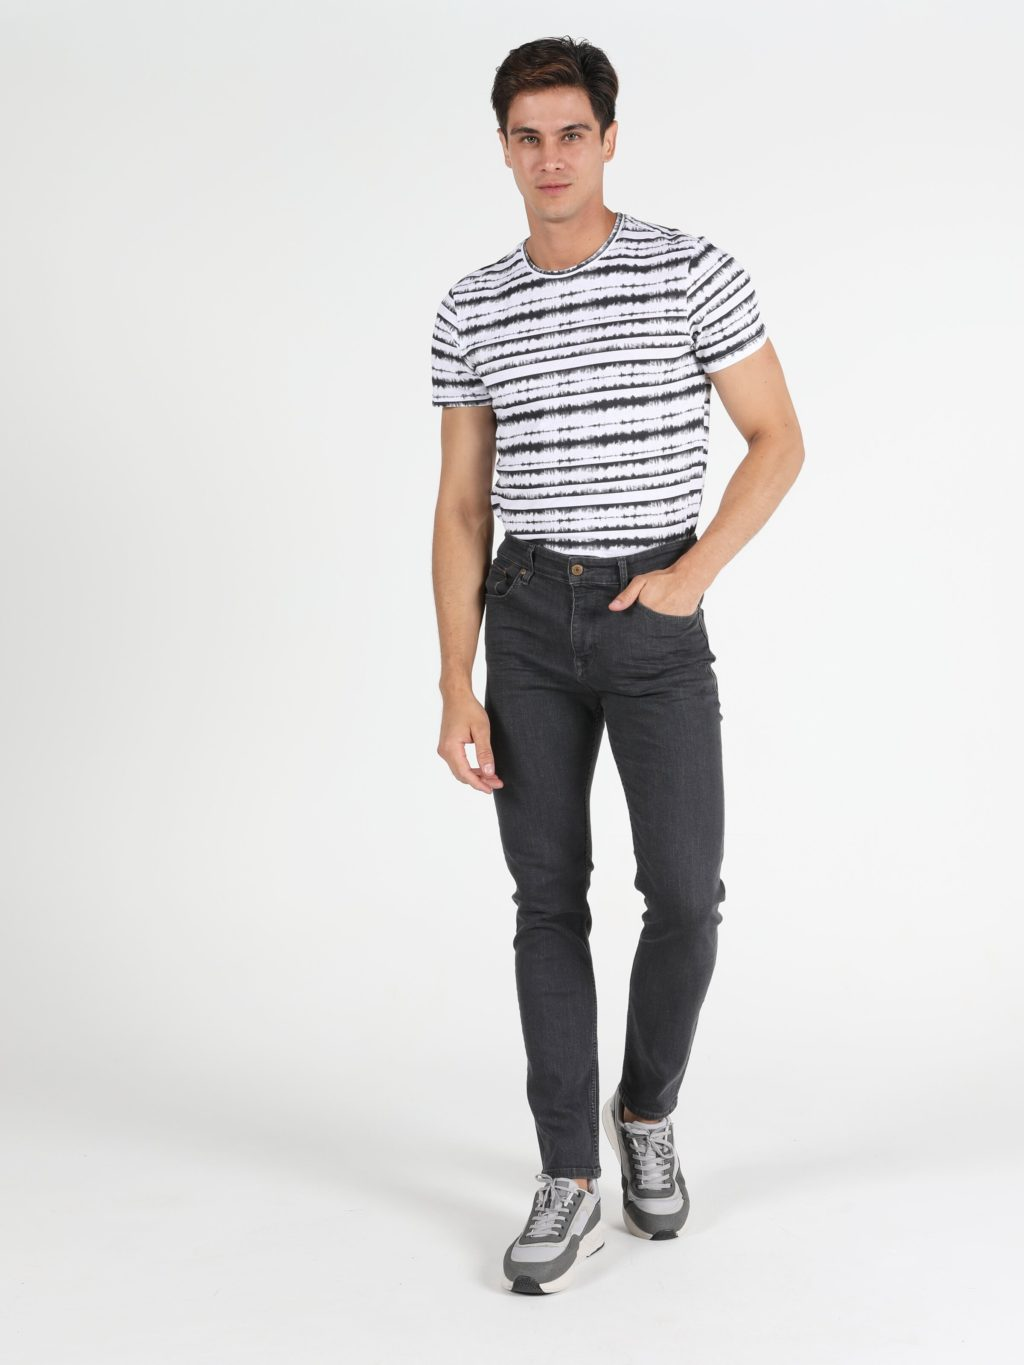 T-shirt-and-jean-trousers-1024x1365 120+ Fashion Trends and Looks for College Students in 2020/2021